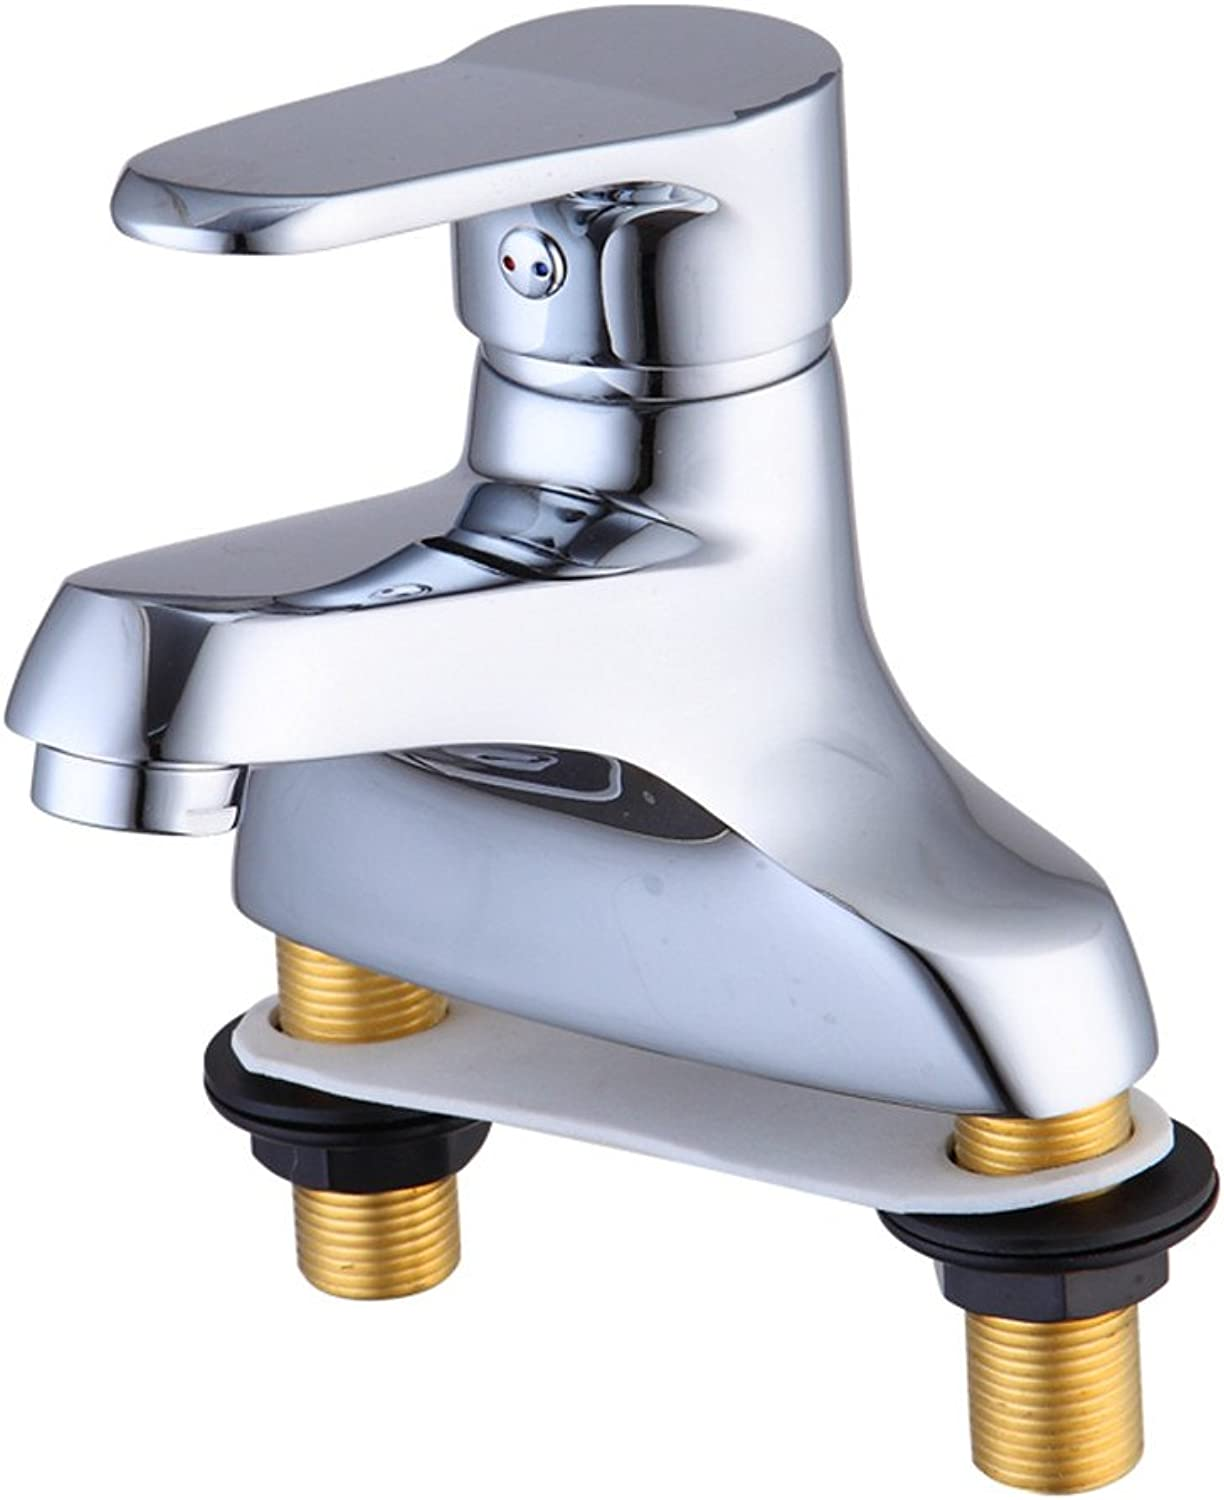 LHbox Basin Mixer Tap Bathroom Sink Faucet The copper double hole cold water basin continental to redate the hot and cold water taps